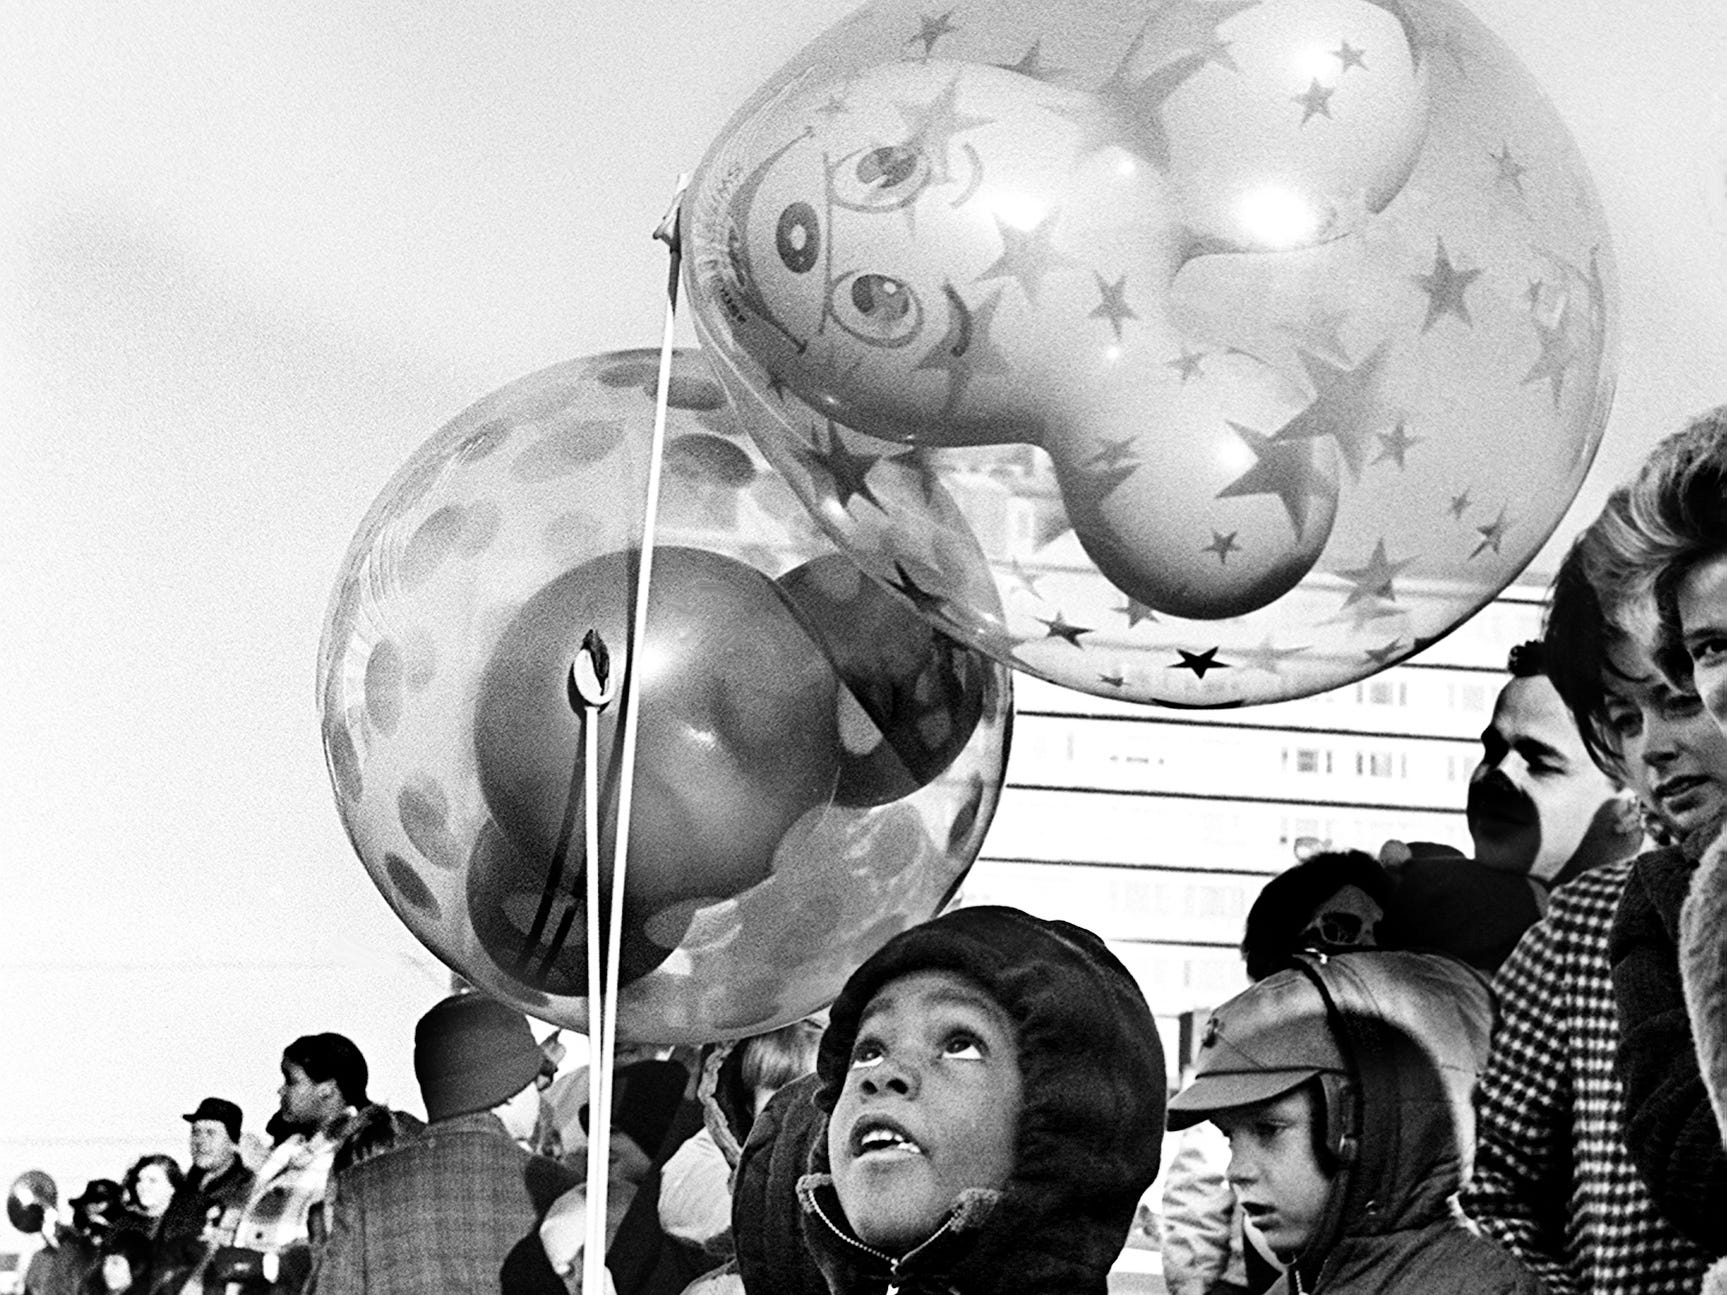 Kevin Rankin, 5, son of Mr. and Mrs. Billie Rankin, watches the chill wind whip his balloons during the 16th annual Nashville Christmas parade Dec. 8, 1968.